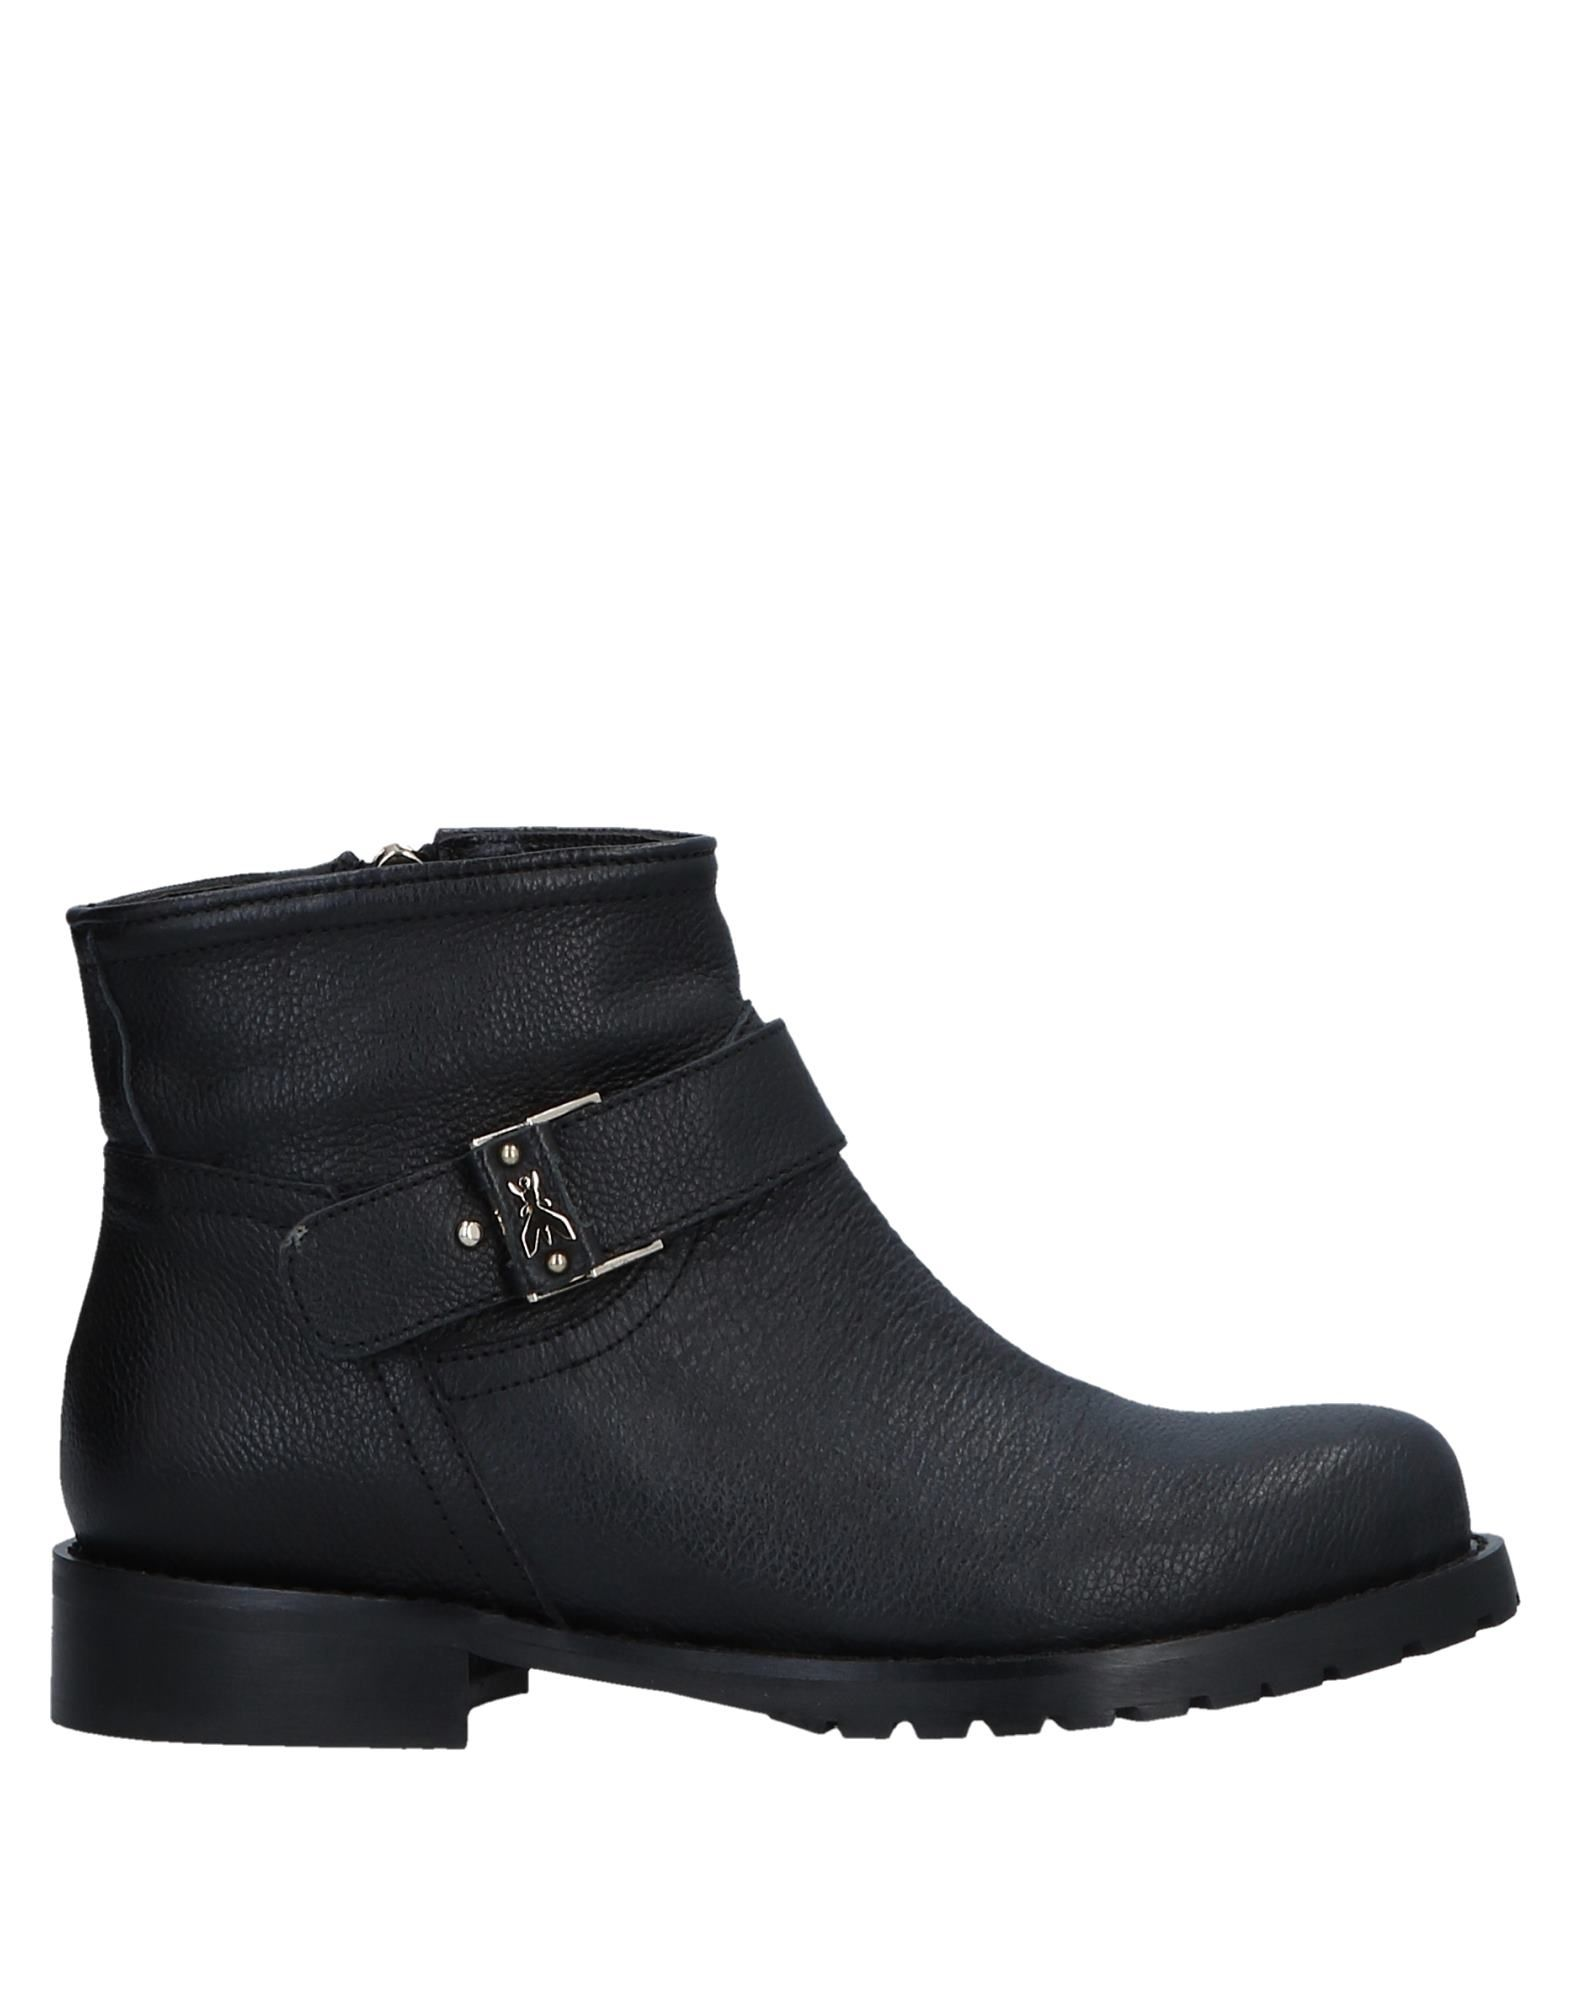 Bottine Patrizia Pepe Femme - Bottines Patrizia Pepe Noir Confortable et belle